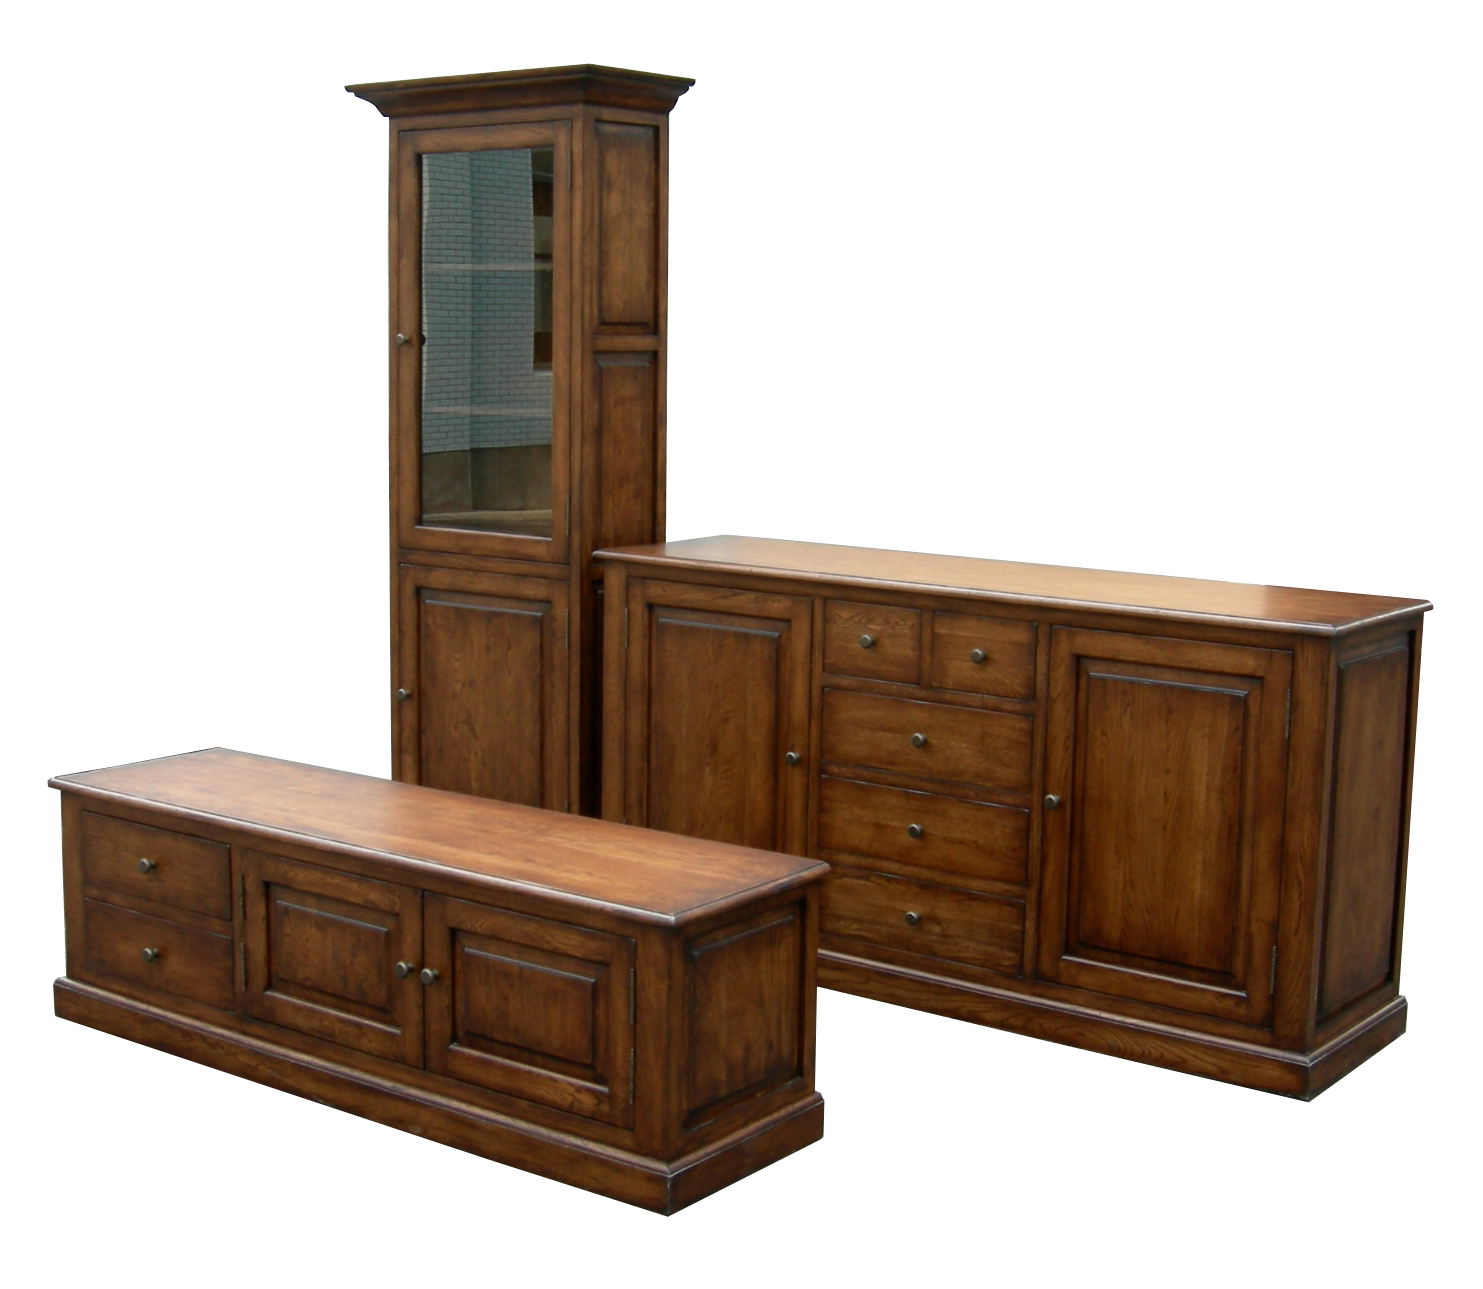 Wooden Furniture Designs - Wooden Furniture shops in kerala  Woodenza